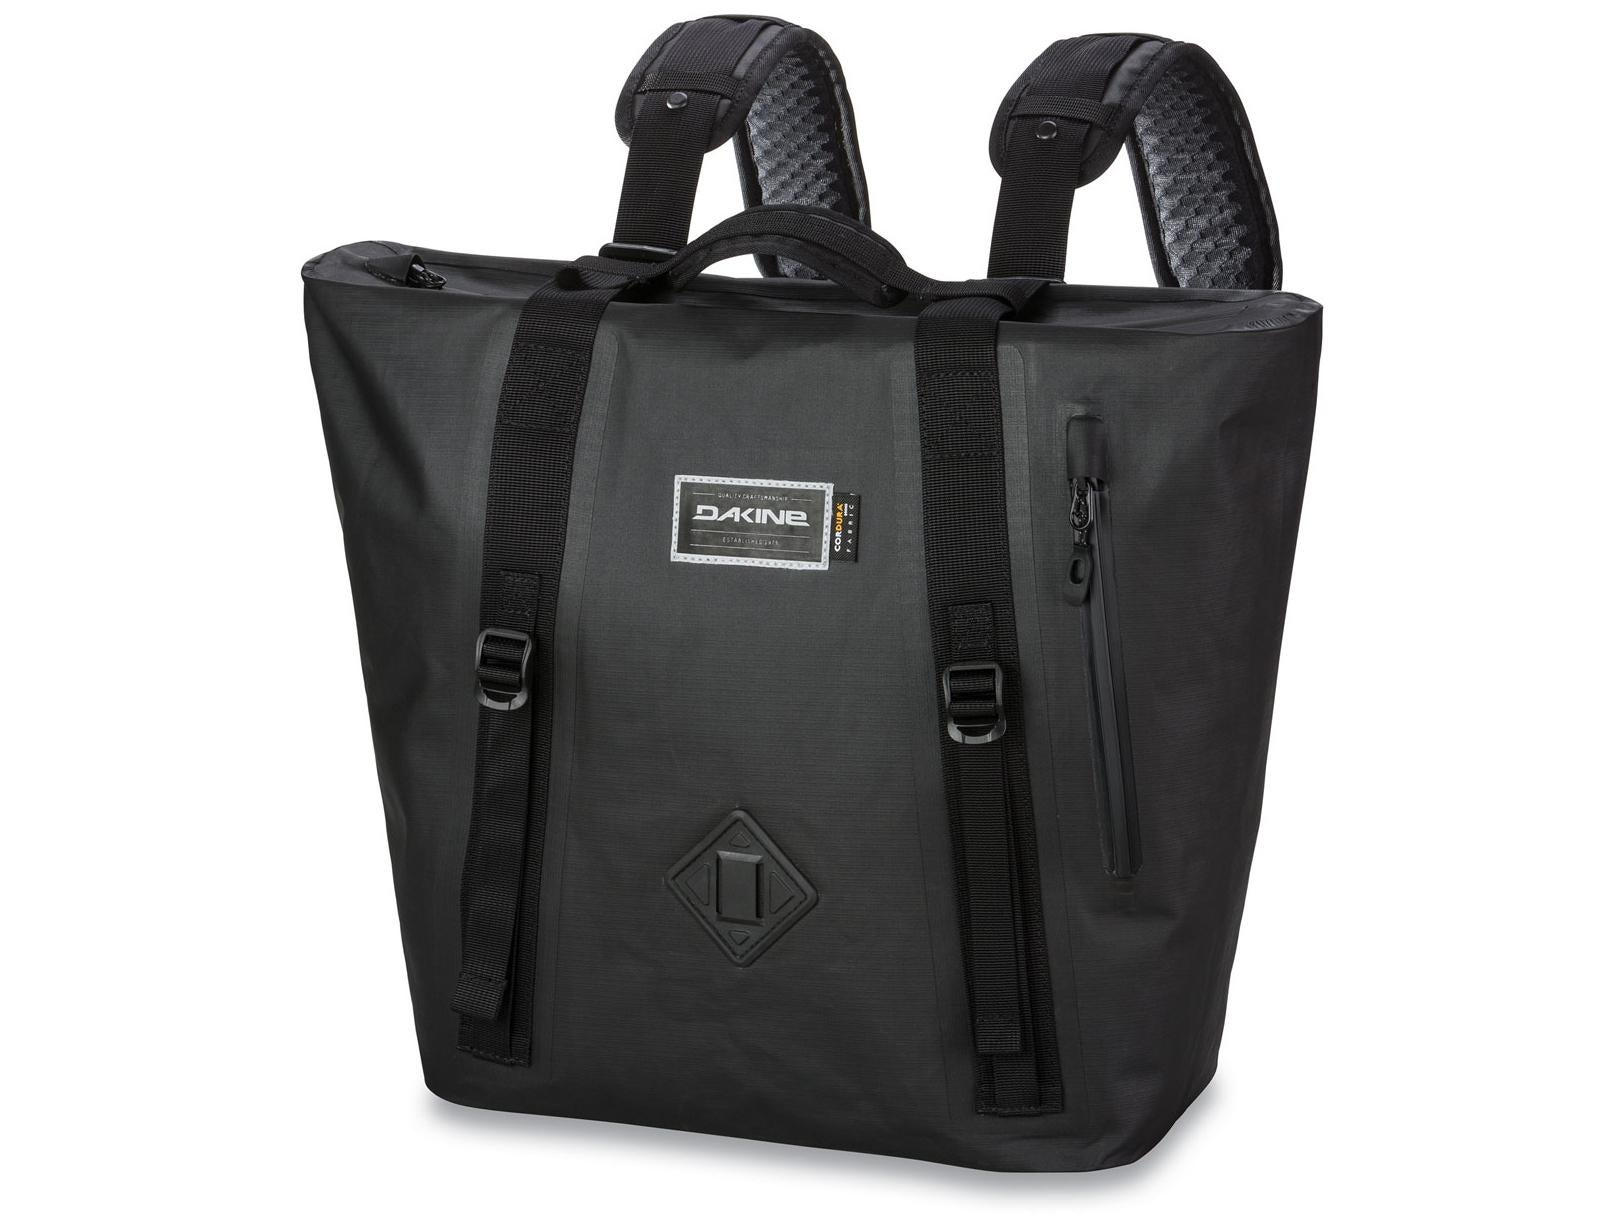 The fabric of this 27-litre bag ... ccf9ac0911b2